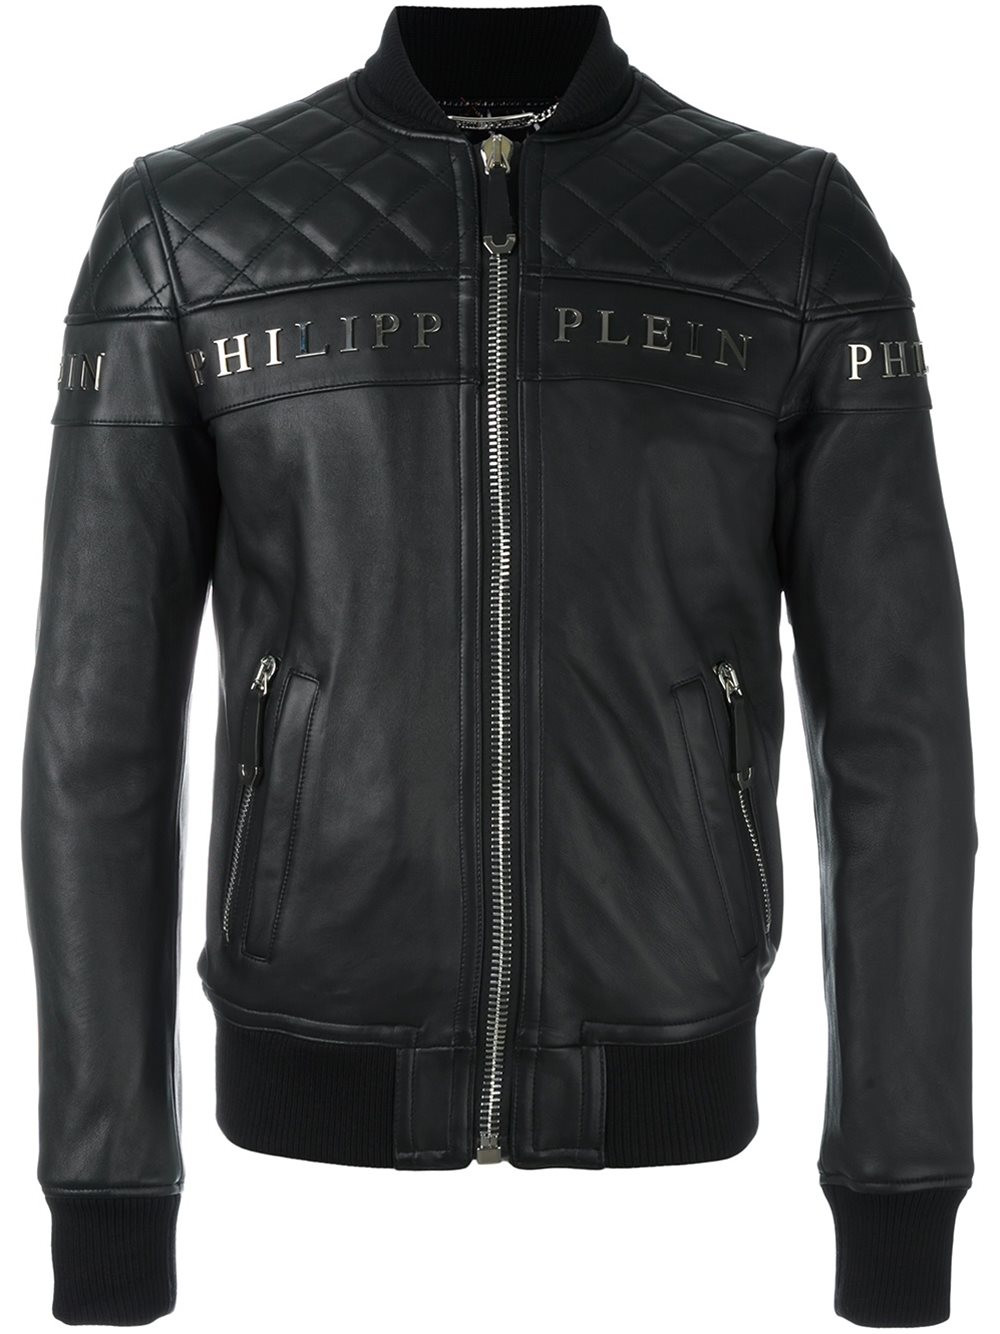 philipp plein 39 crimson 39 bomber jacket in black for men lyst. Black Bedroom Furniture Sets. Home Design Ideas